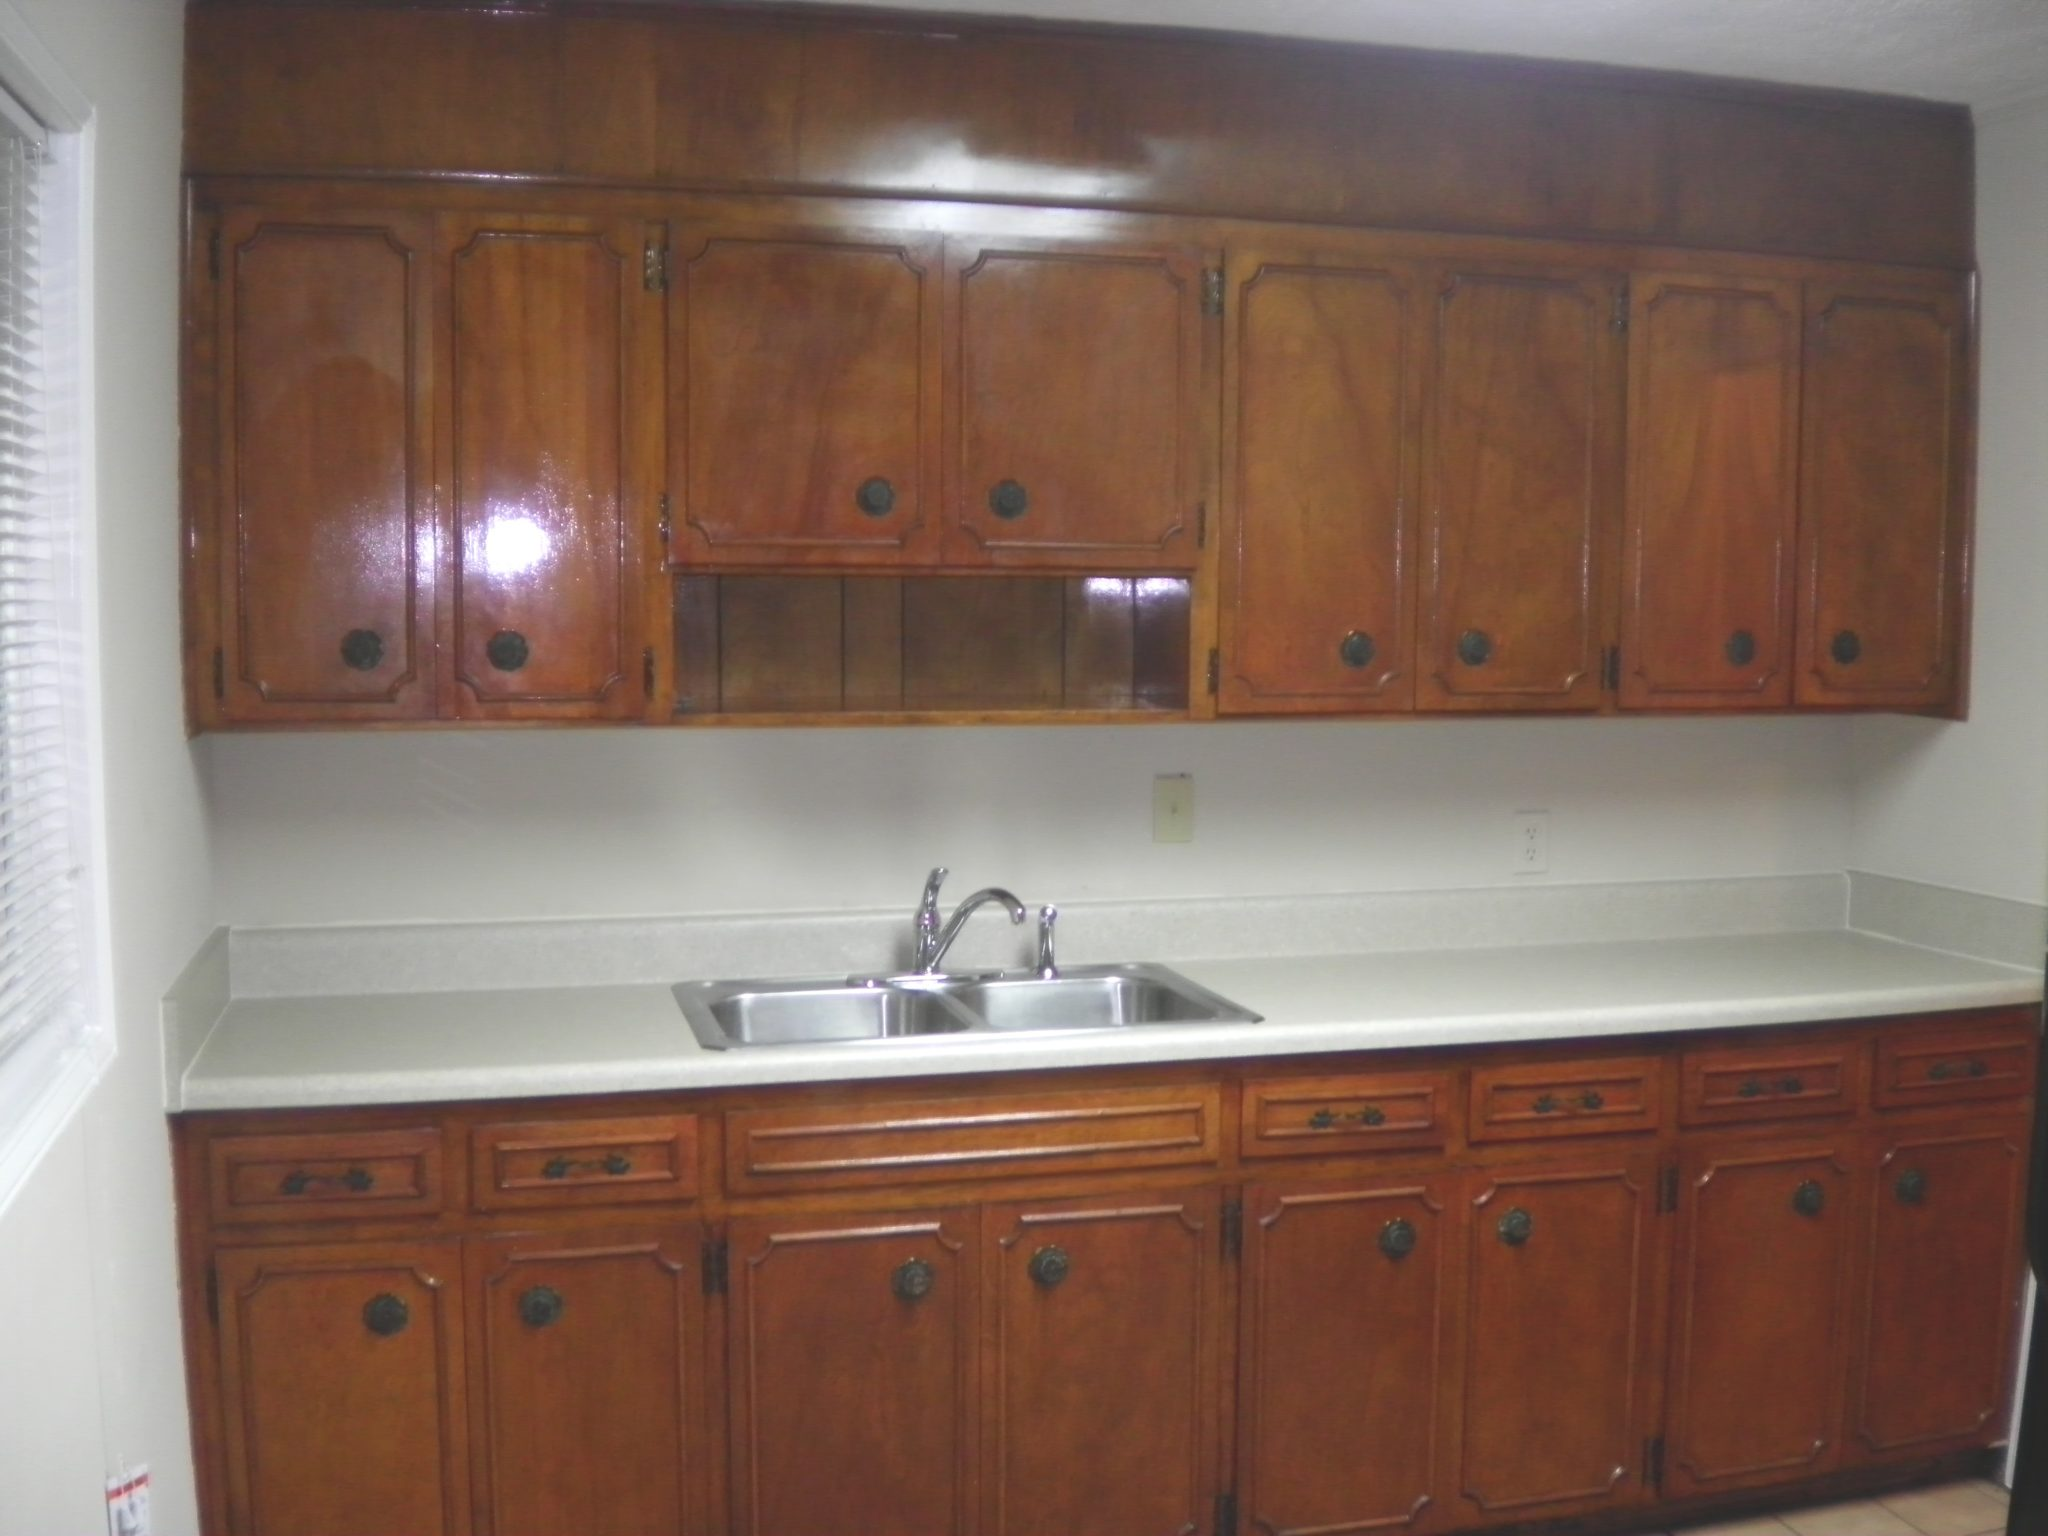 Used kitchen cabinets augusta ga - 2278 Darlington Drive Veterans Realty Of Augusta Kitchen Cabinets Augusta Ga